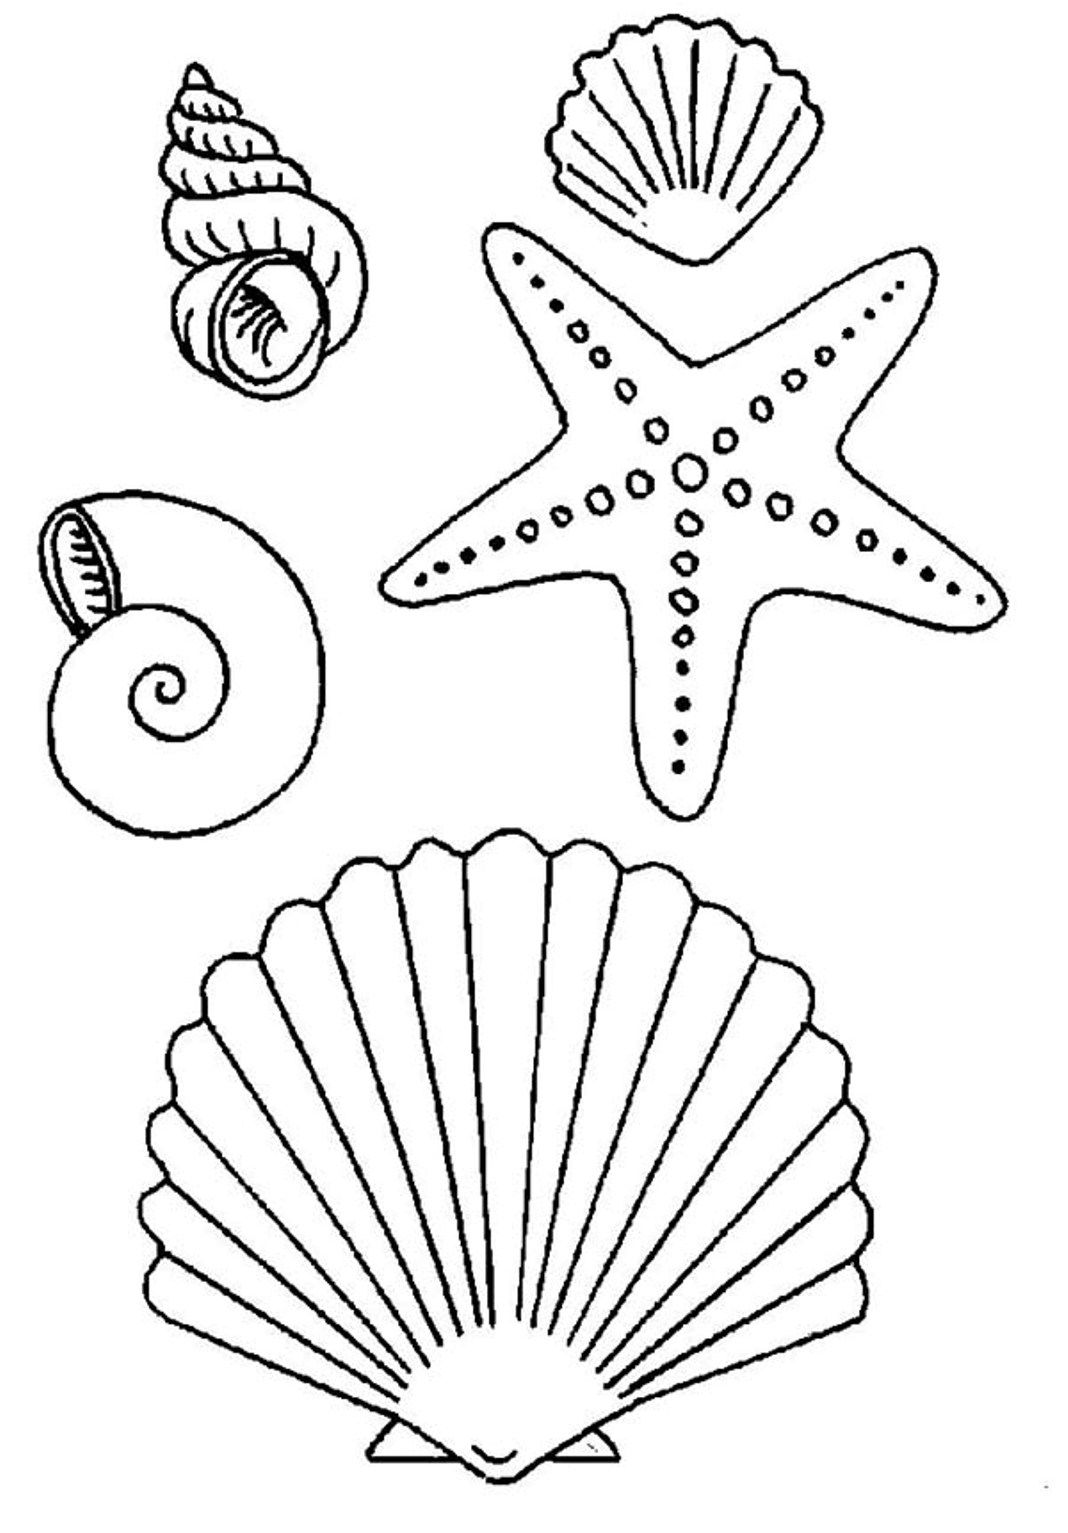 Shell Coloring Pages Shell Seashells Template Coloring Pages Sea Shells